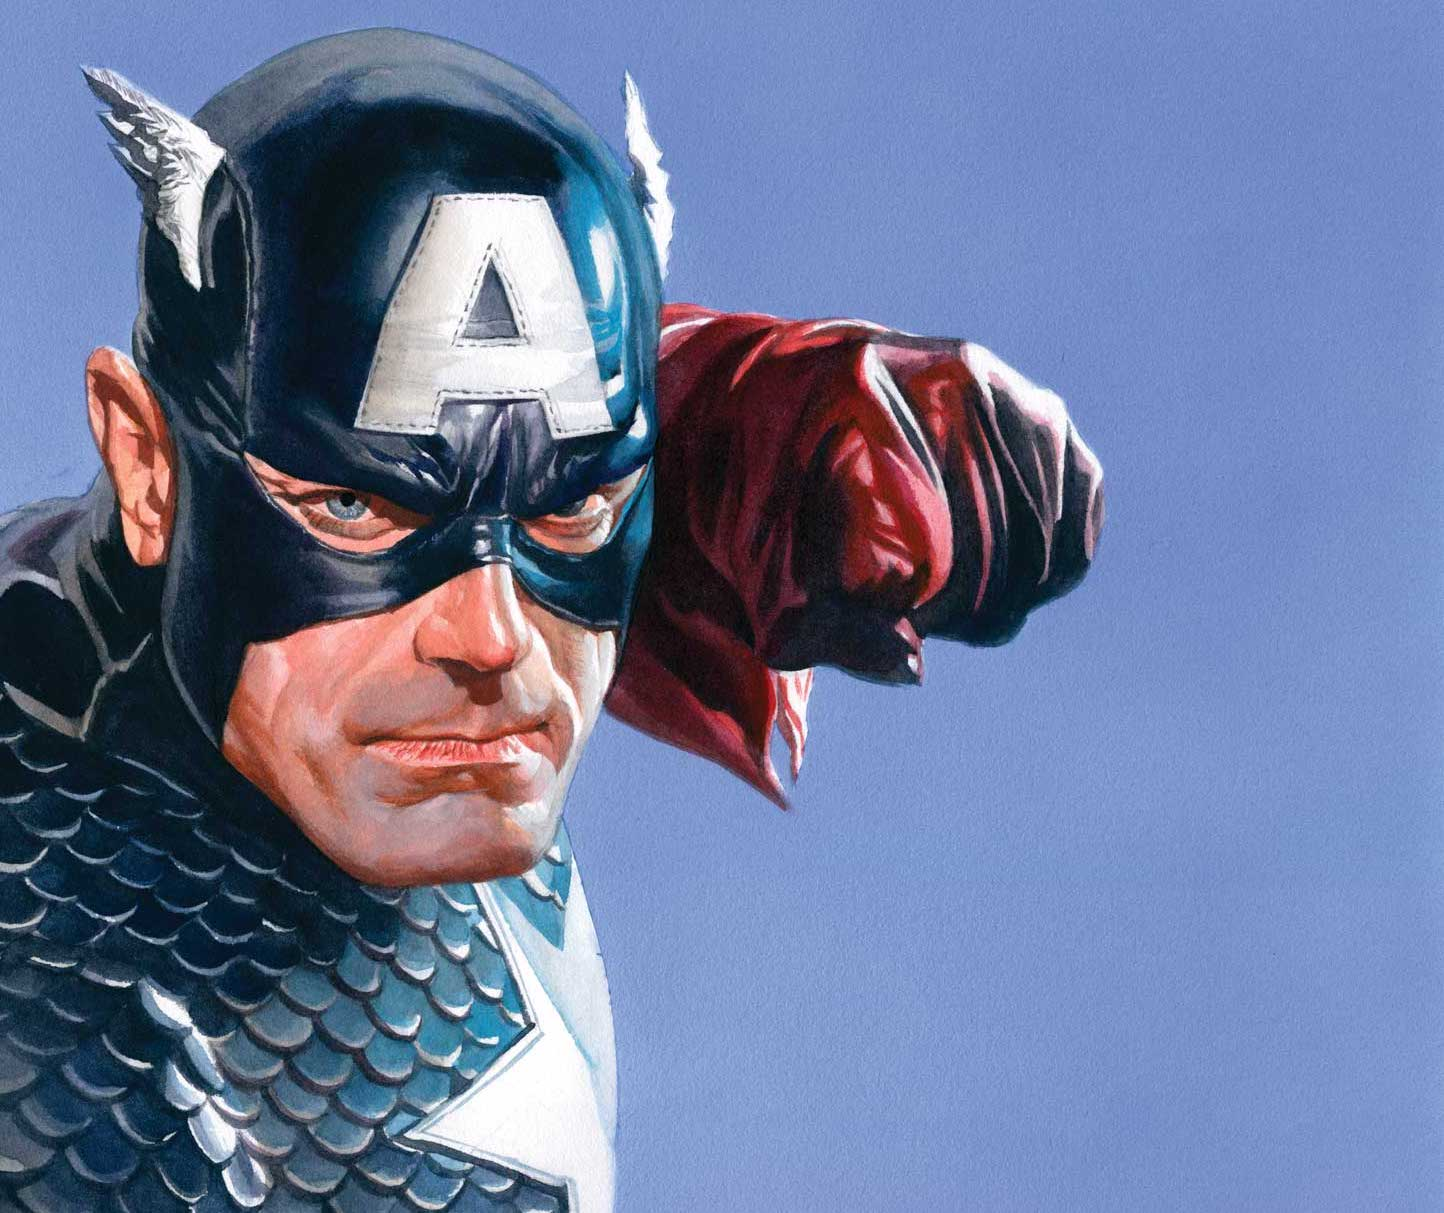 'Captain America: Marvels Snapshot' #1 review: An important story